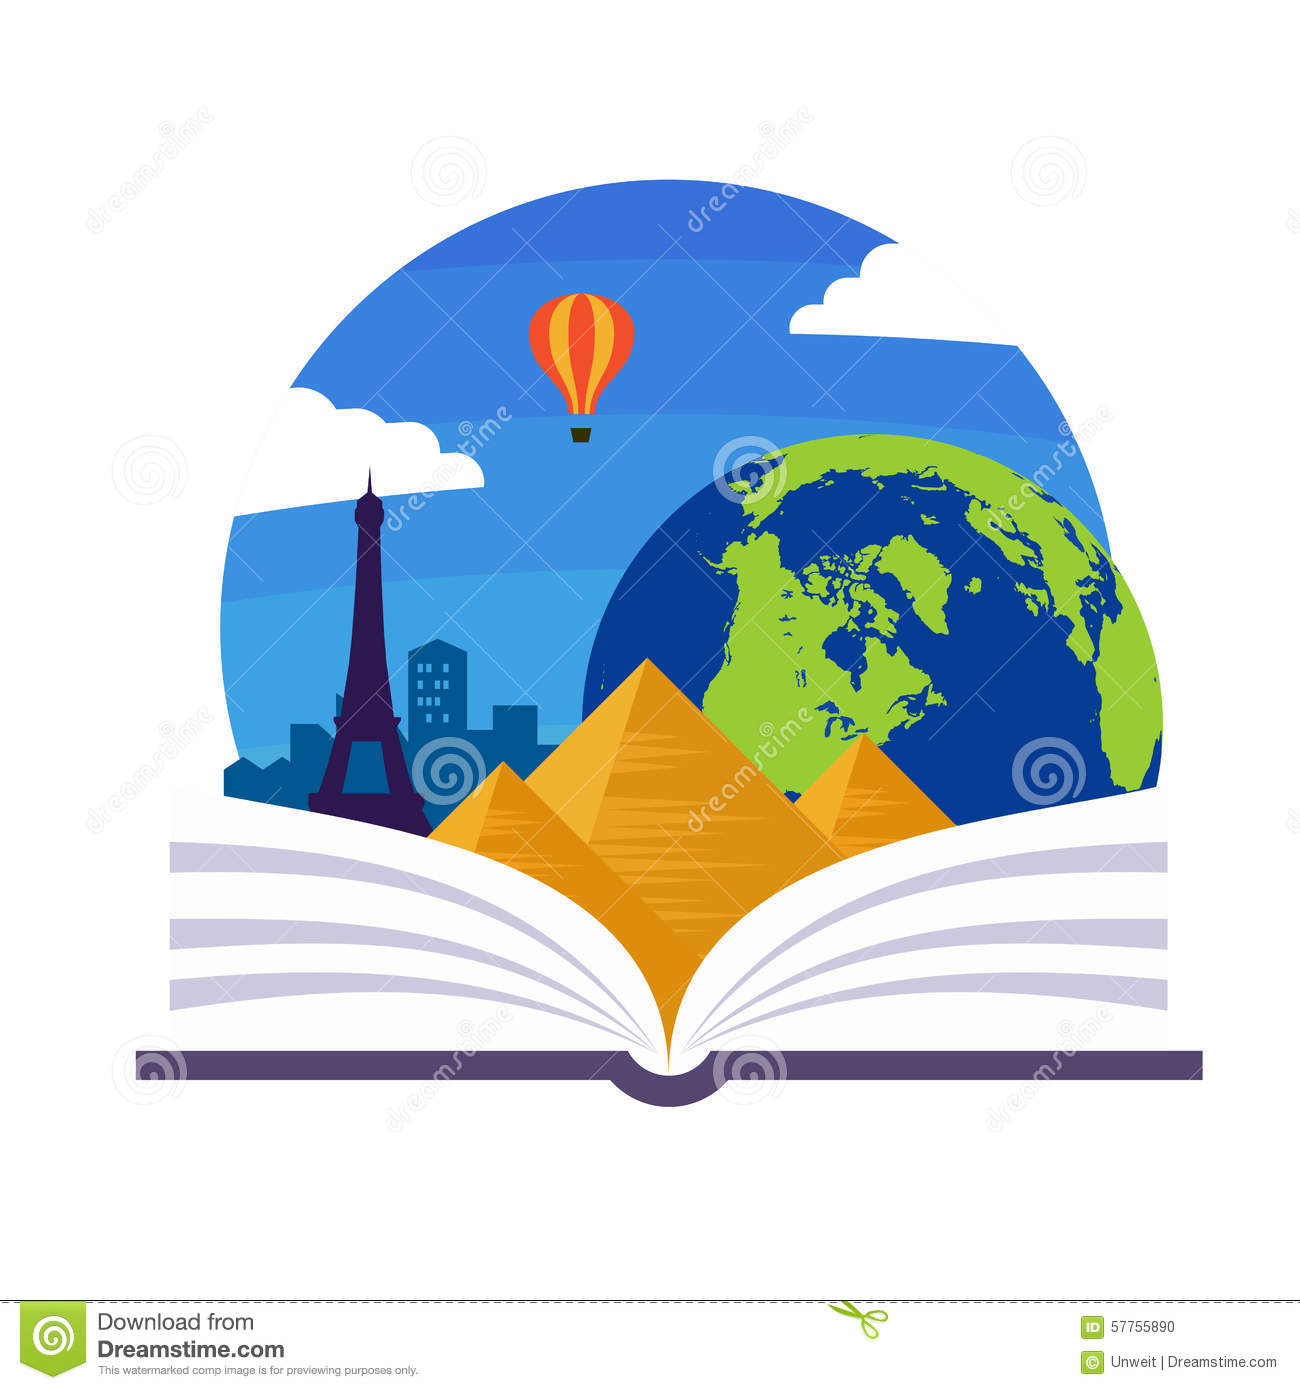 Geography Emblem Stock Vector - Image: 57755890